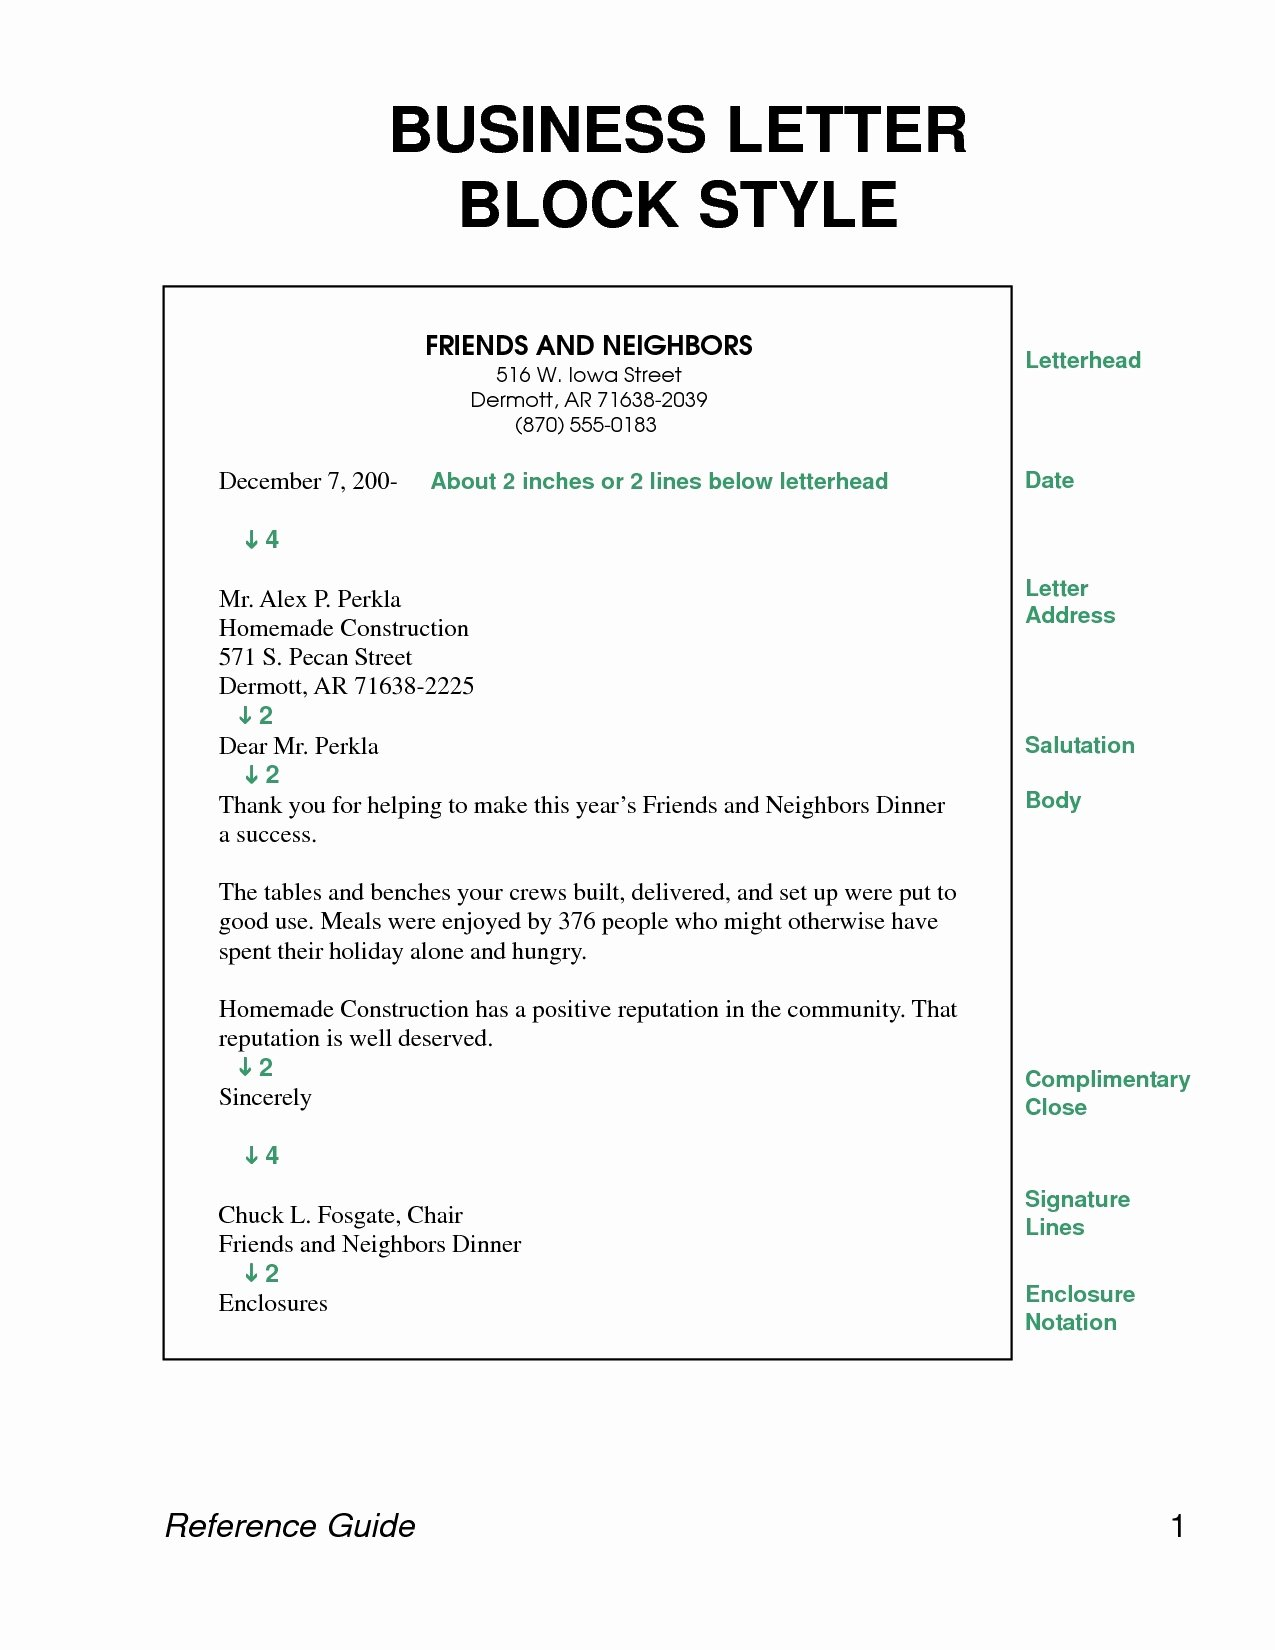 Cover Letter Block format Best Of Block Style Business Letter Template